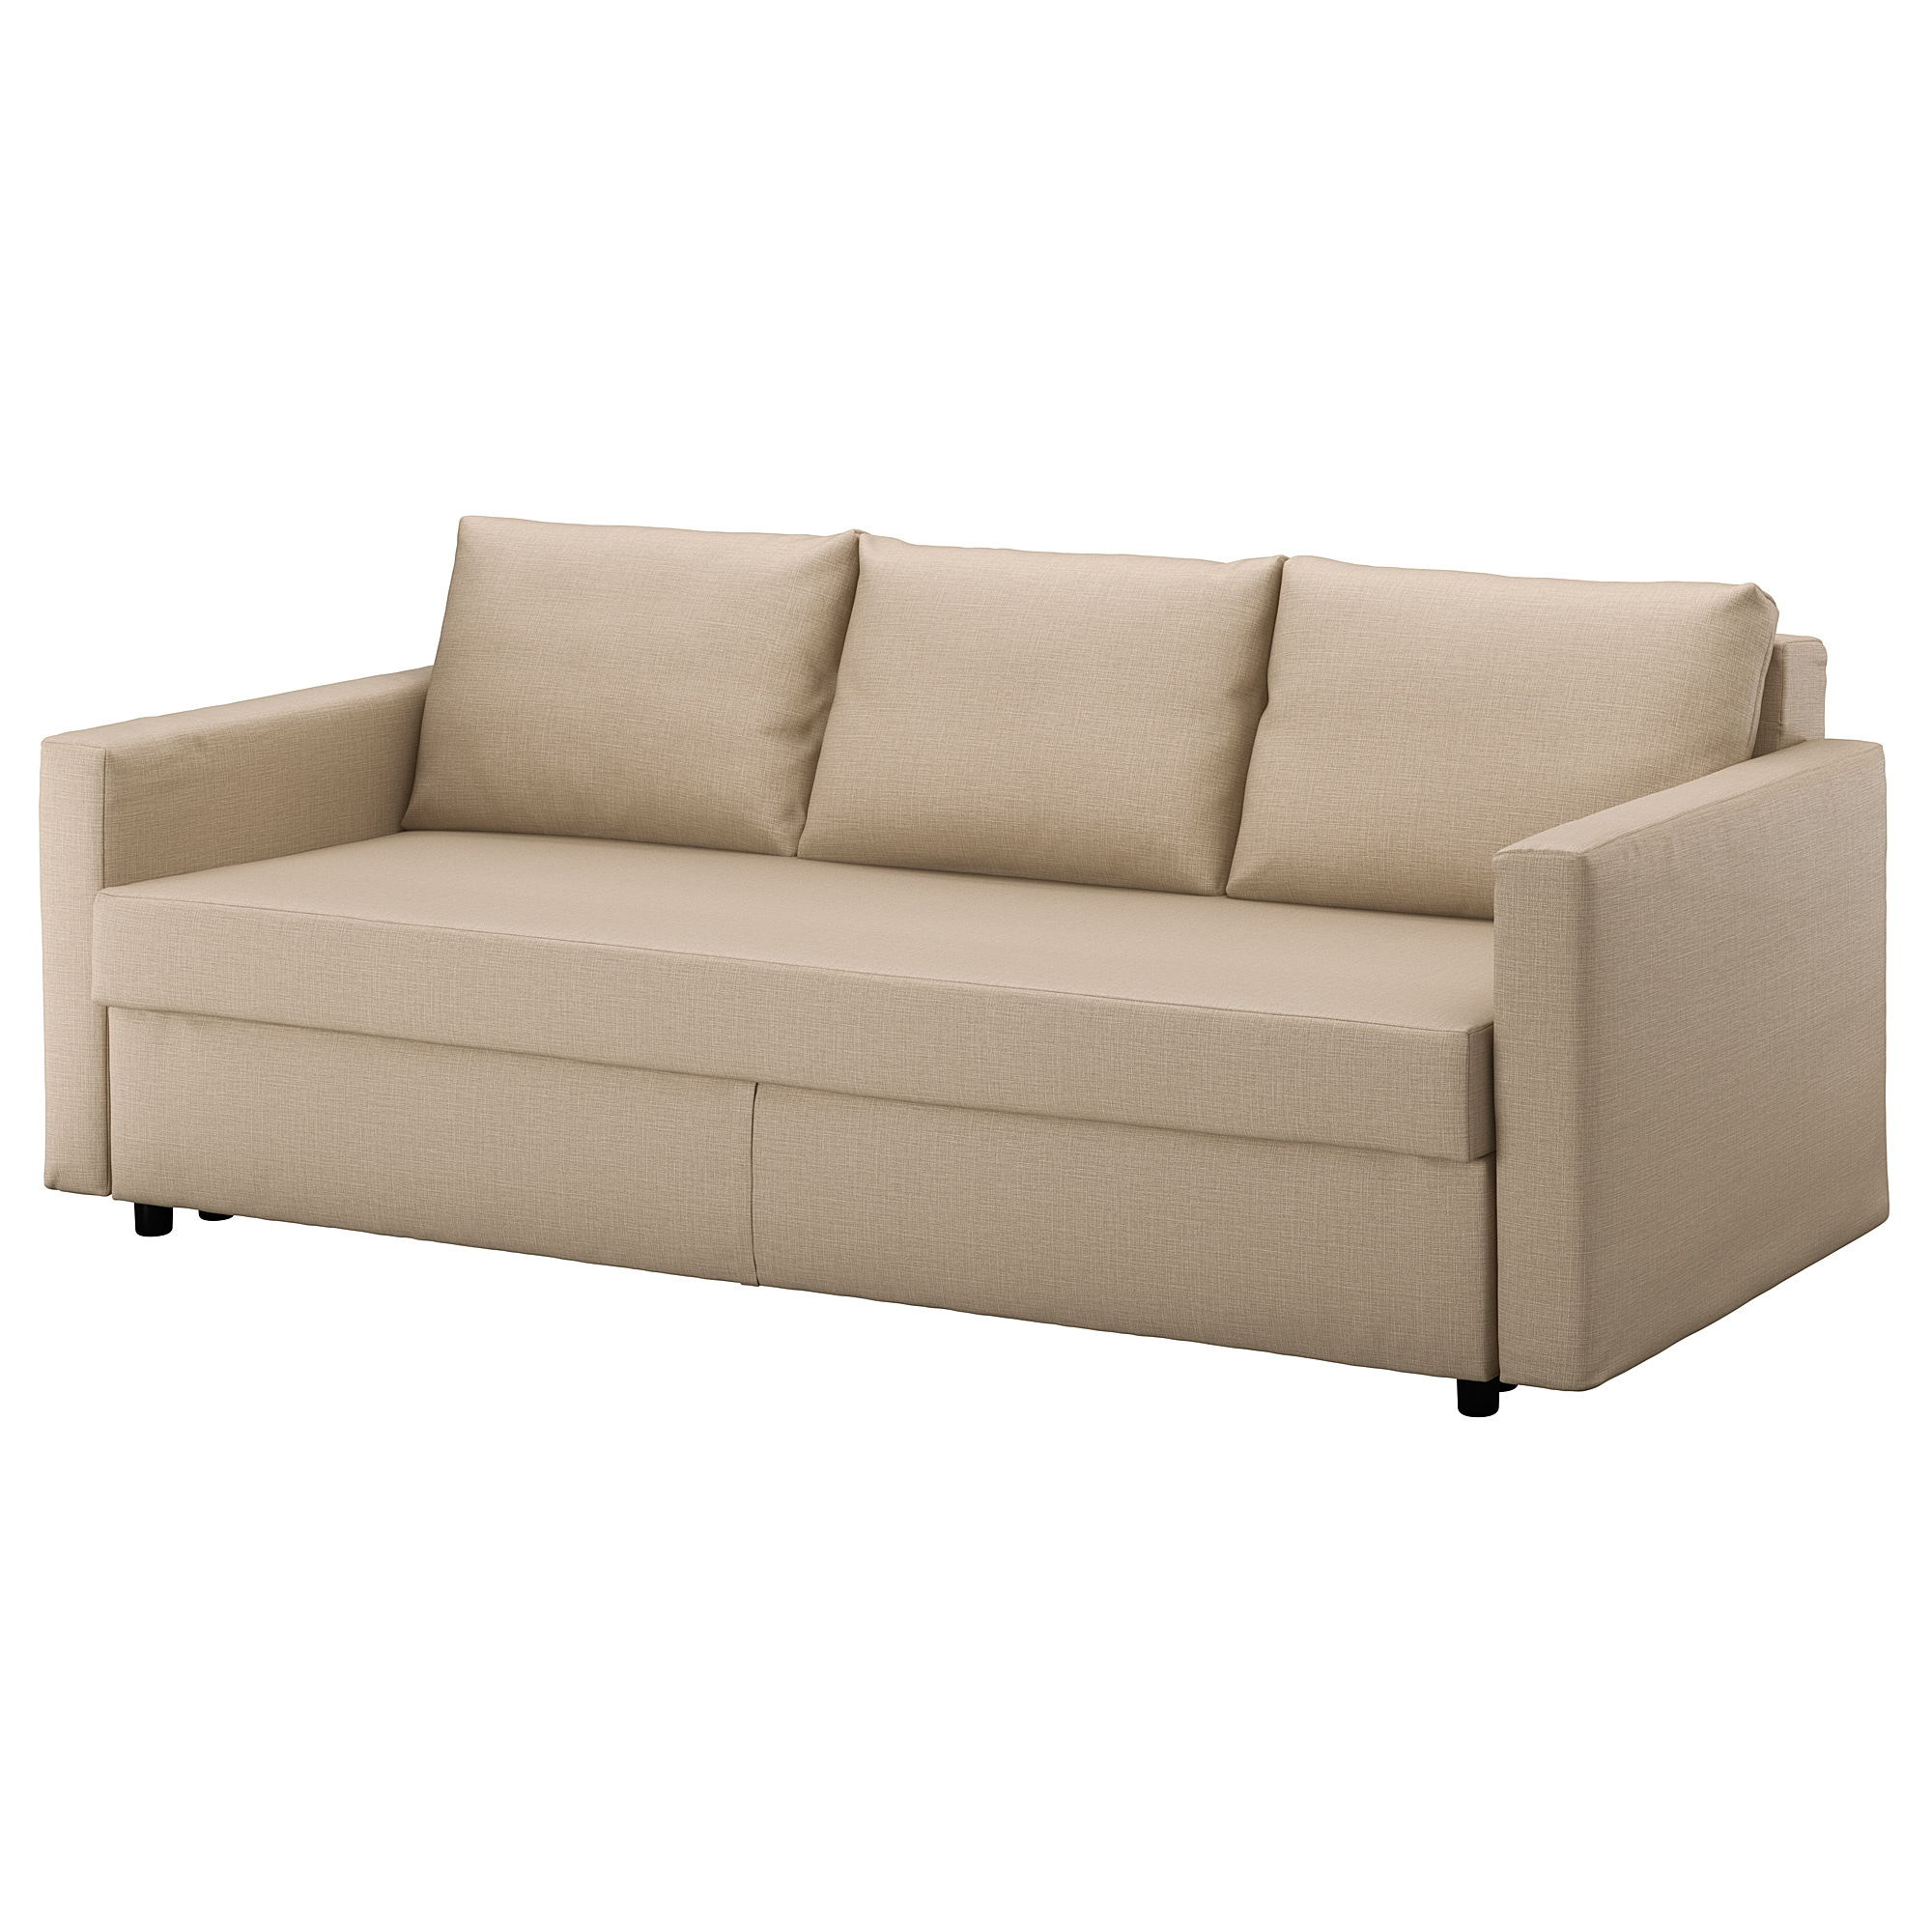 Bettsofa mit lattenrost ikea  Bettsofas & Tagesbetten - IKEA.AT